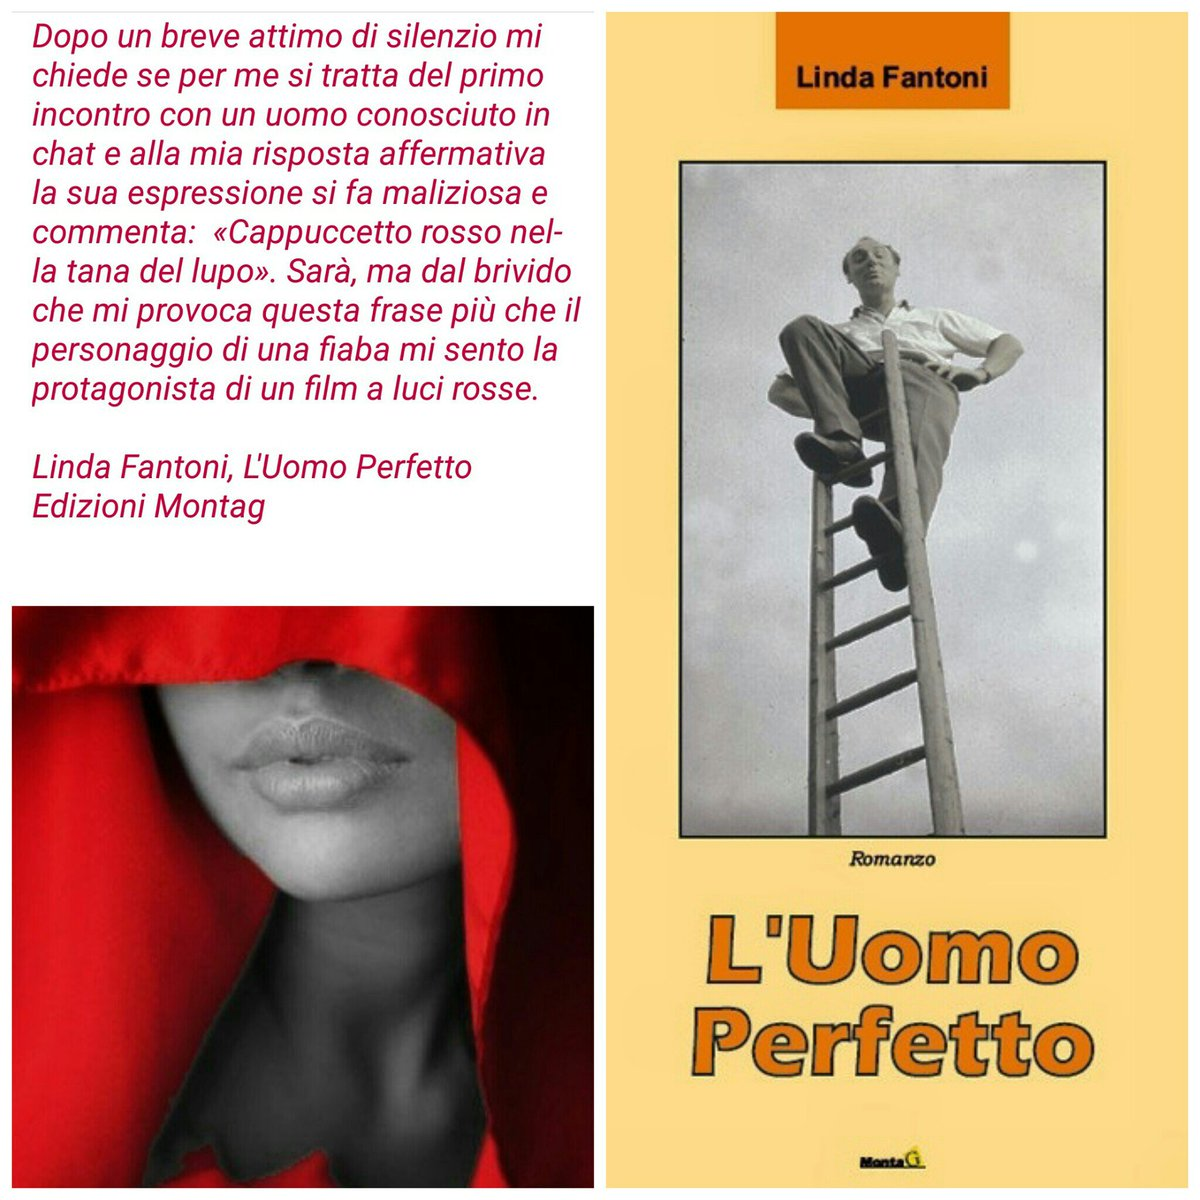 Linda Fantoni On Twitter Per Acquistare E Commentare L